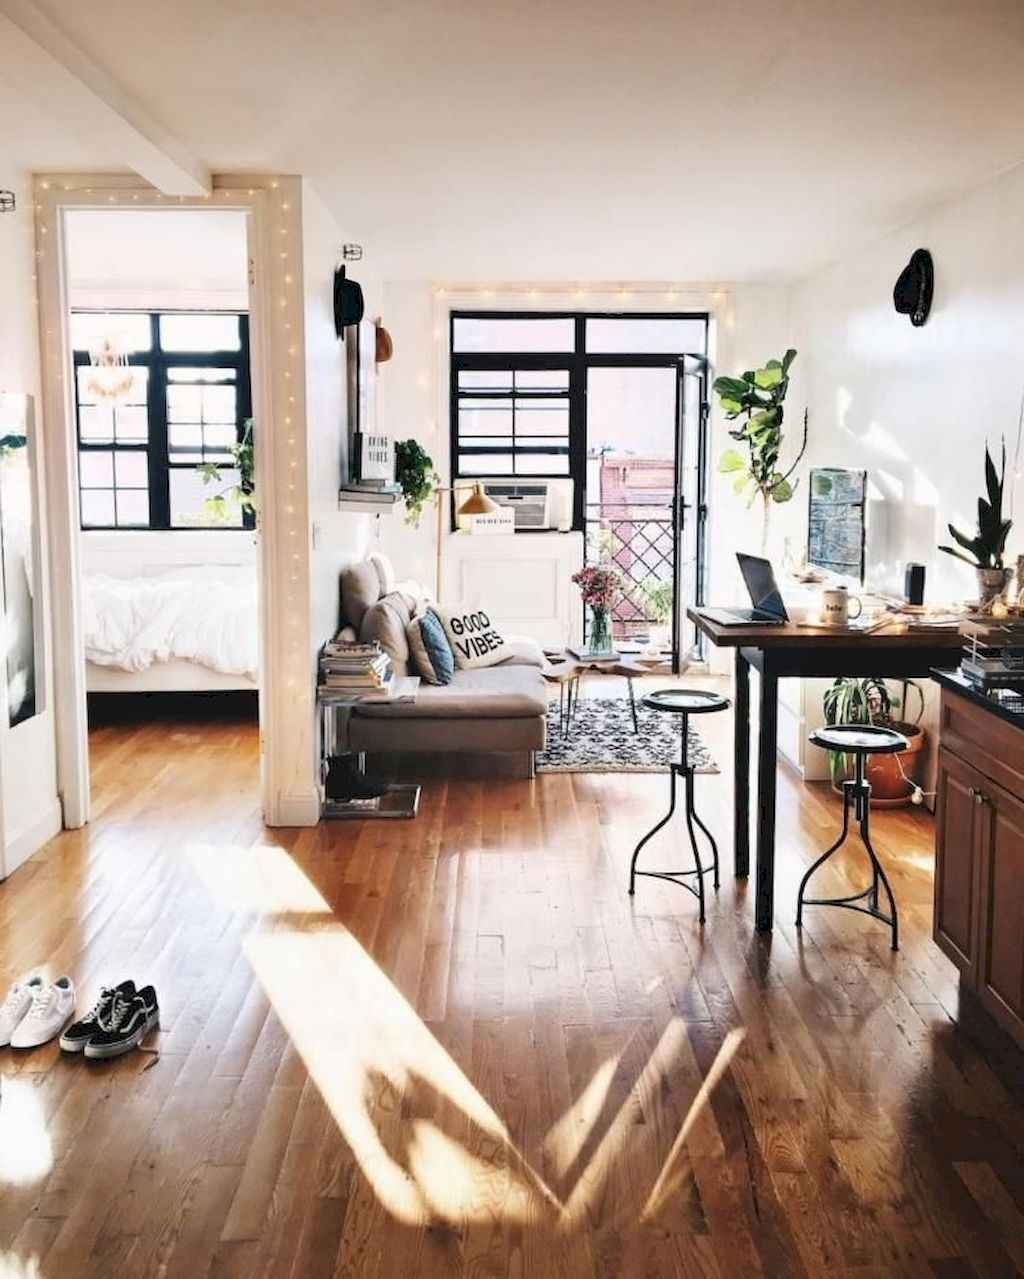 Apartments Near Me For Cheap: 43 Cheap And Easy First Apartment Decorating Ideas On A